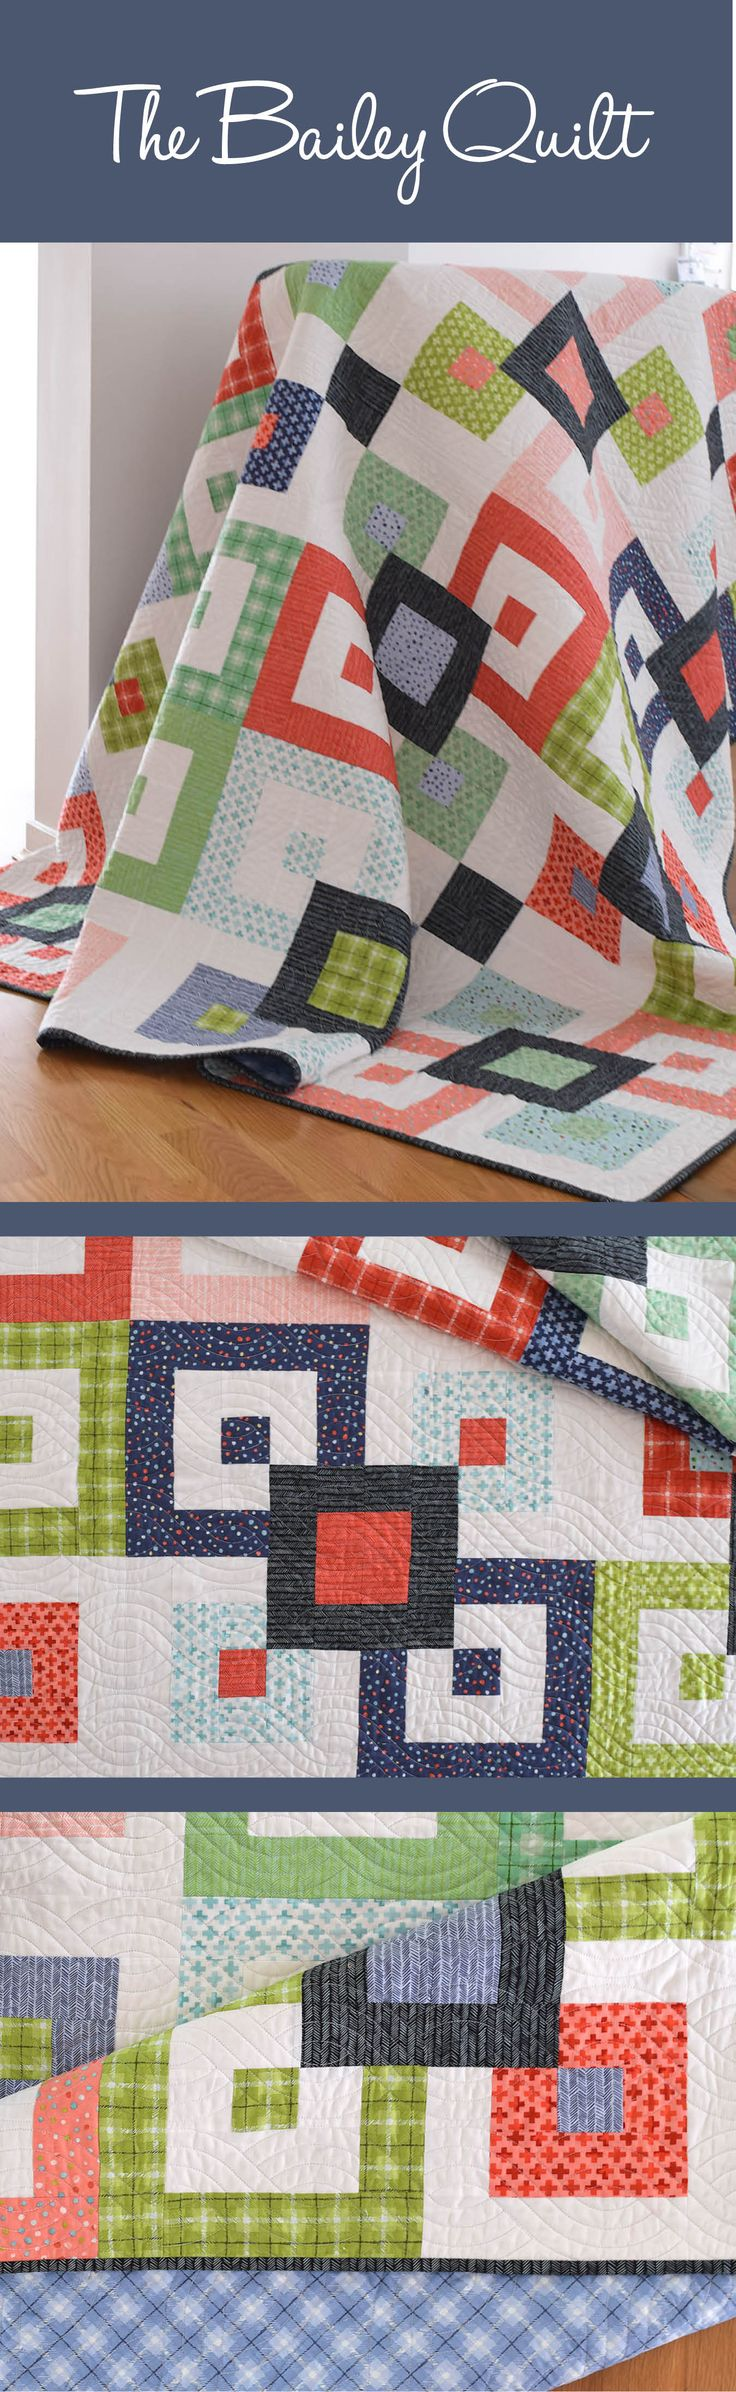 Free Quilt Patterns Fat Quarter Friendly Cafca Info For